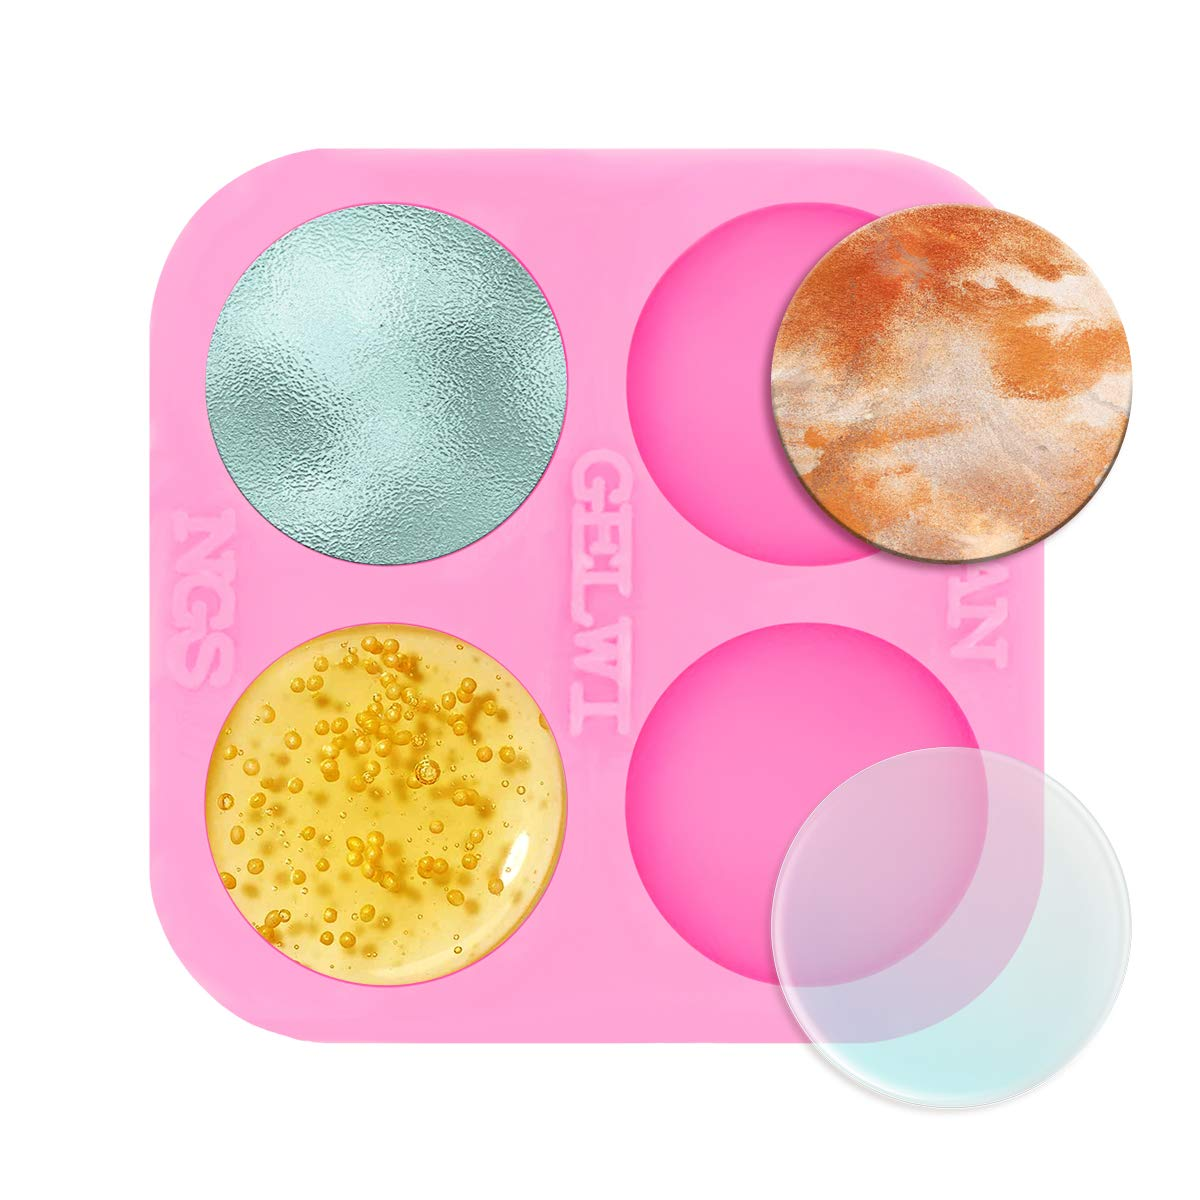 Super Shiny 0.75 inch Silicone Molds Mini Round Resin Mold, 4-Cavity Small Size Circle Epoxy Resin Casting Mold for DIY Badge Reels Mold Earrings Mold Jewelry Making Silicone Mould